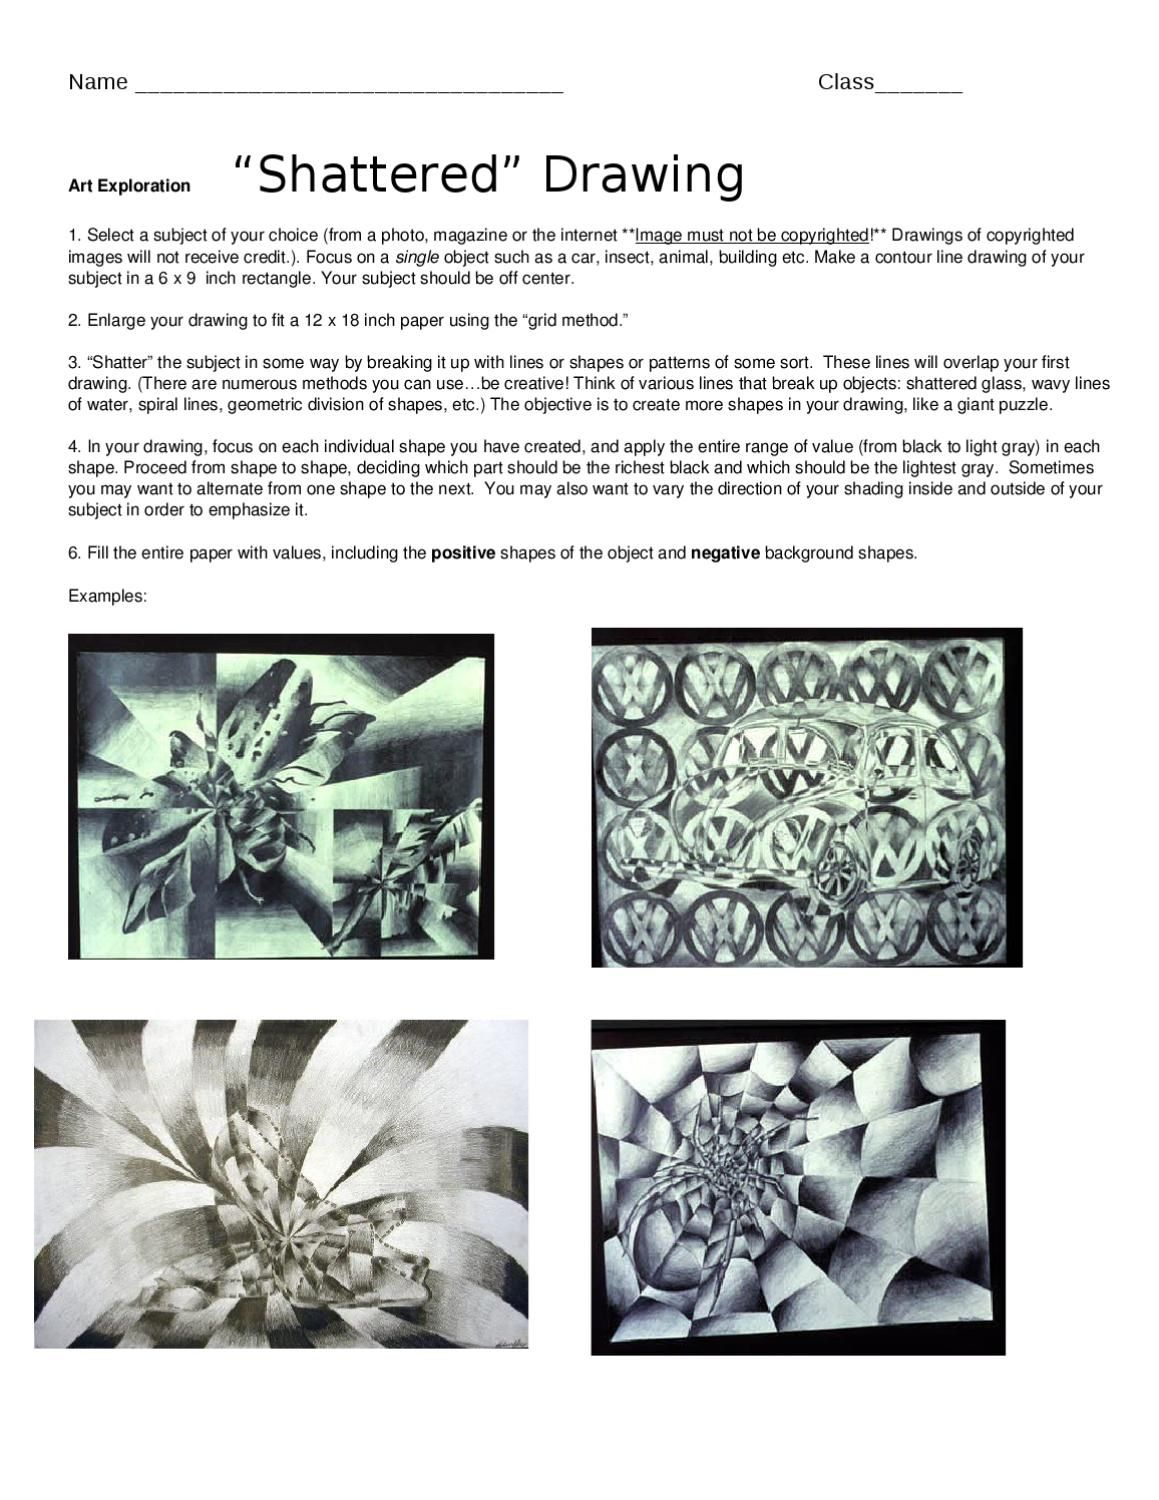 Shattered Drawing Handout